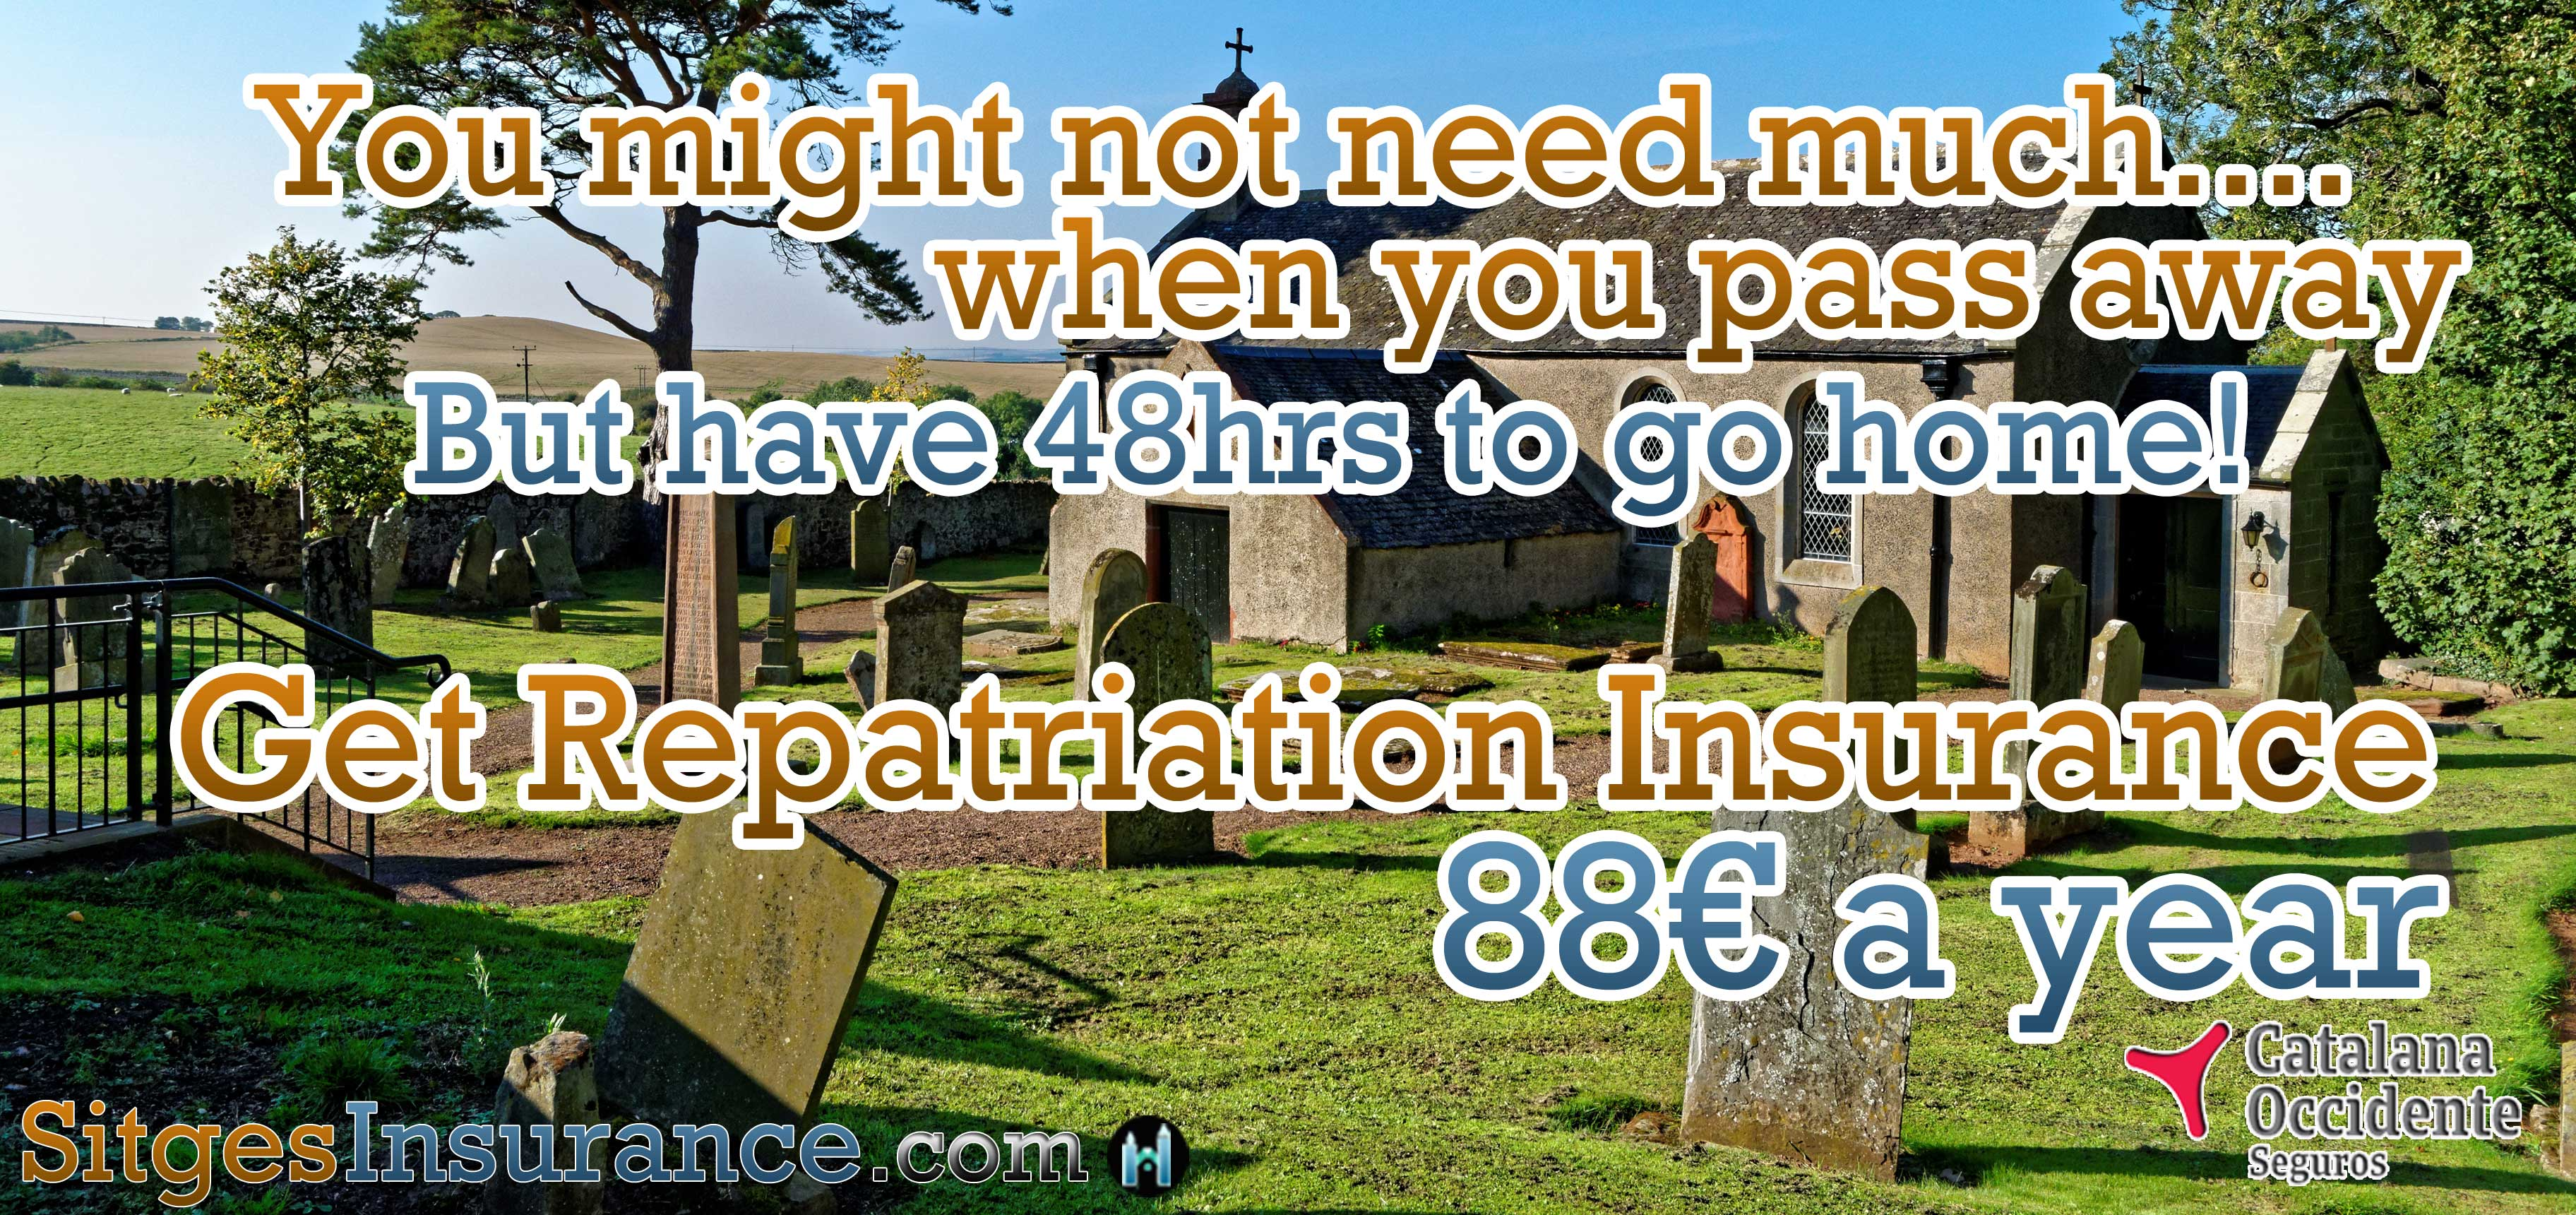 repatriation insurance offer